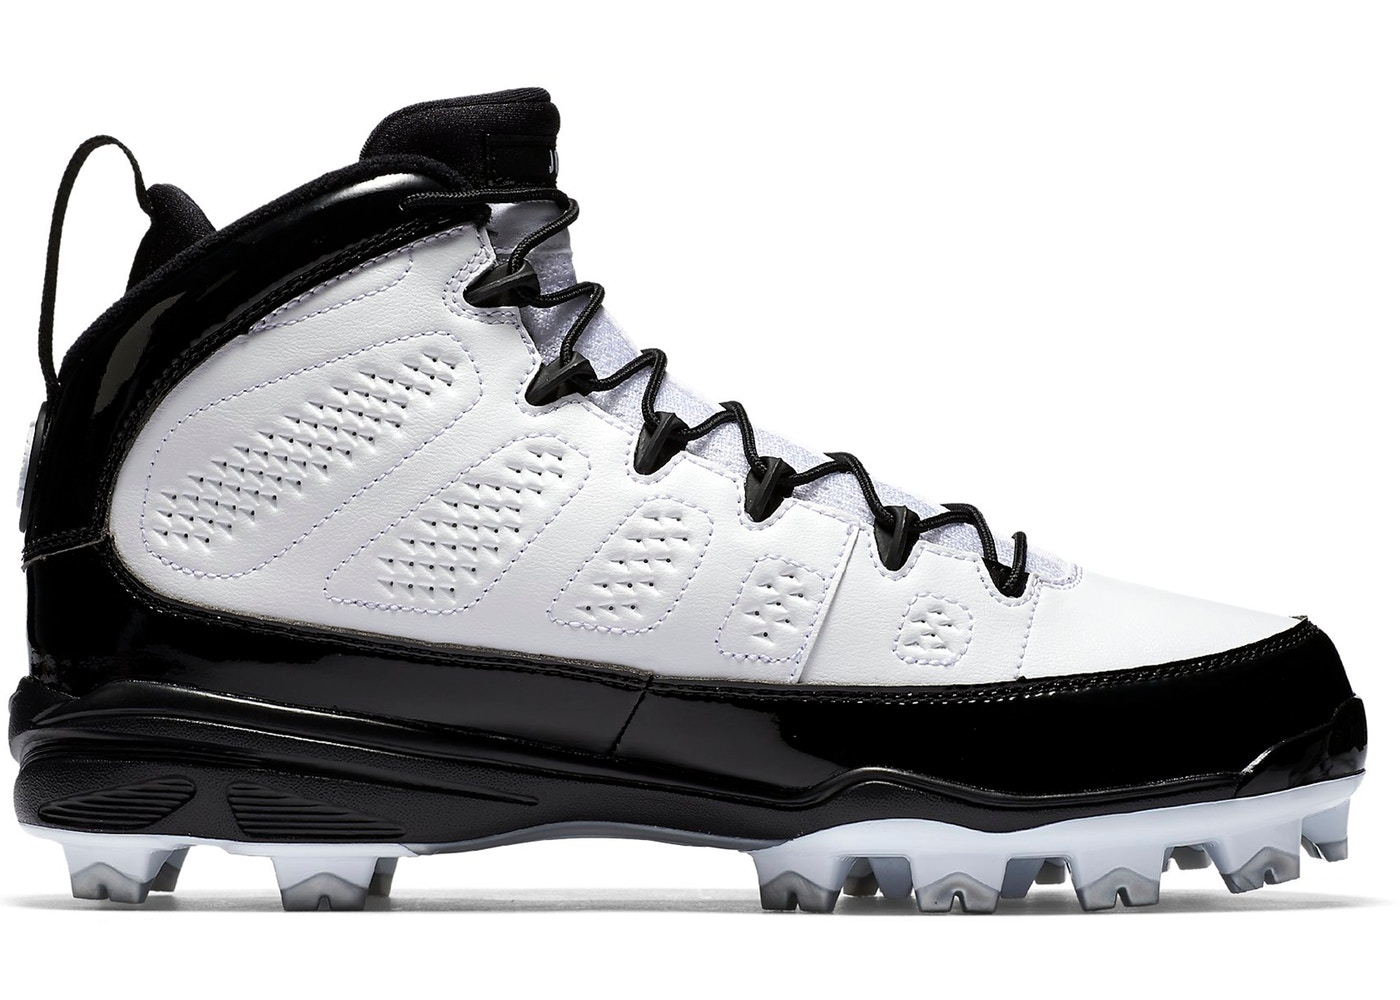 371fb592051 Sell. or Ask. Size: 10.5. View All Bids. Jordan 9 Retro MCS Cleat RE2PECT White  Black